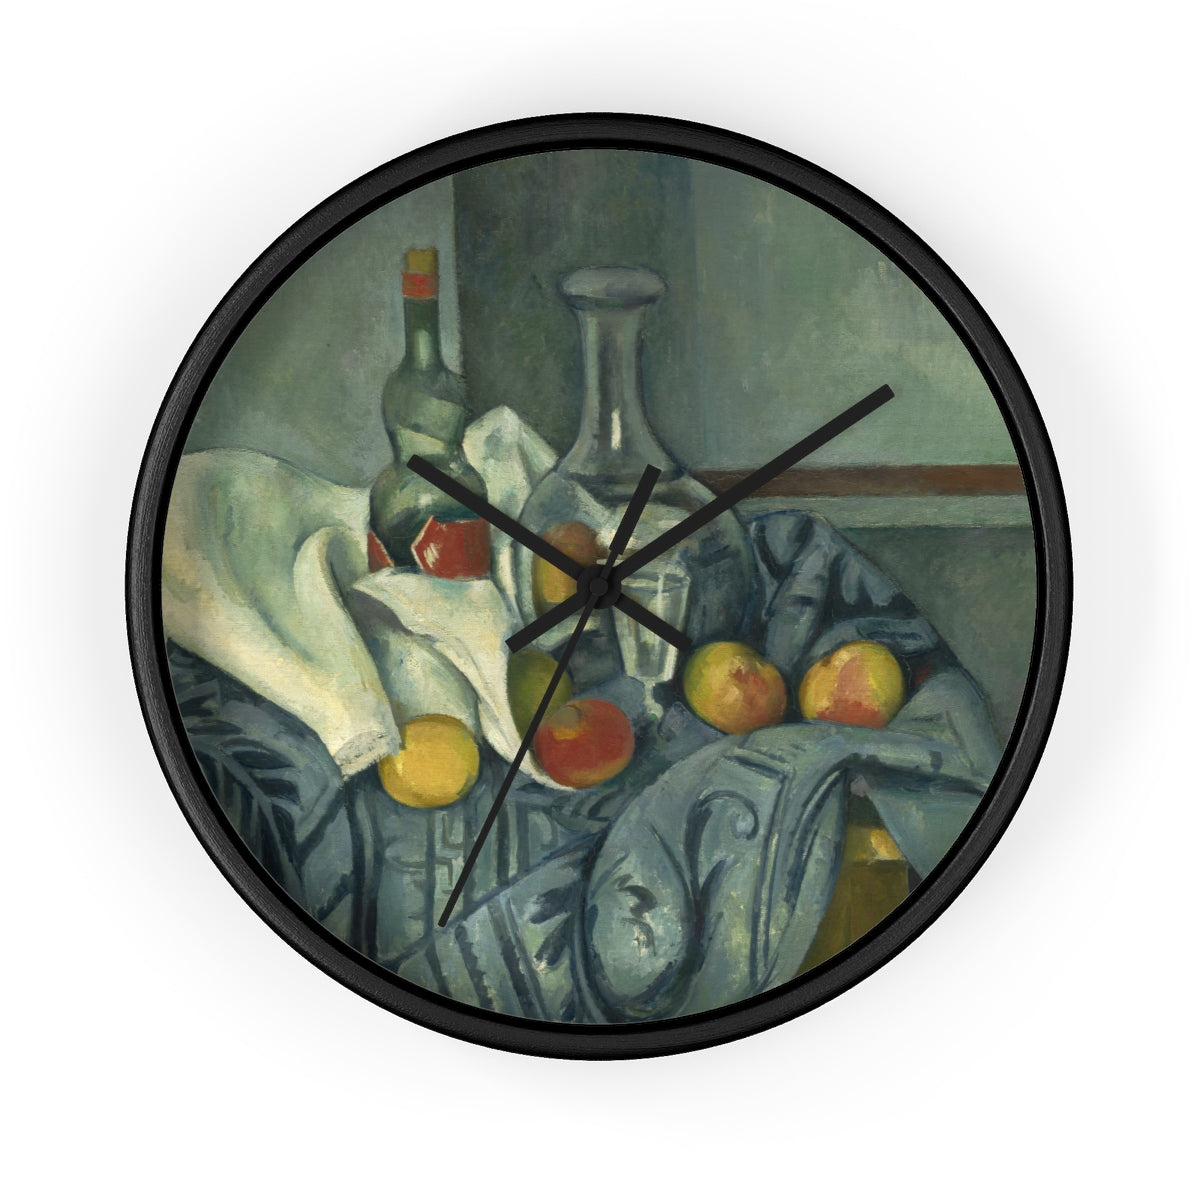 Wall Clock With Paul Cézanne Artwork - justafive.com